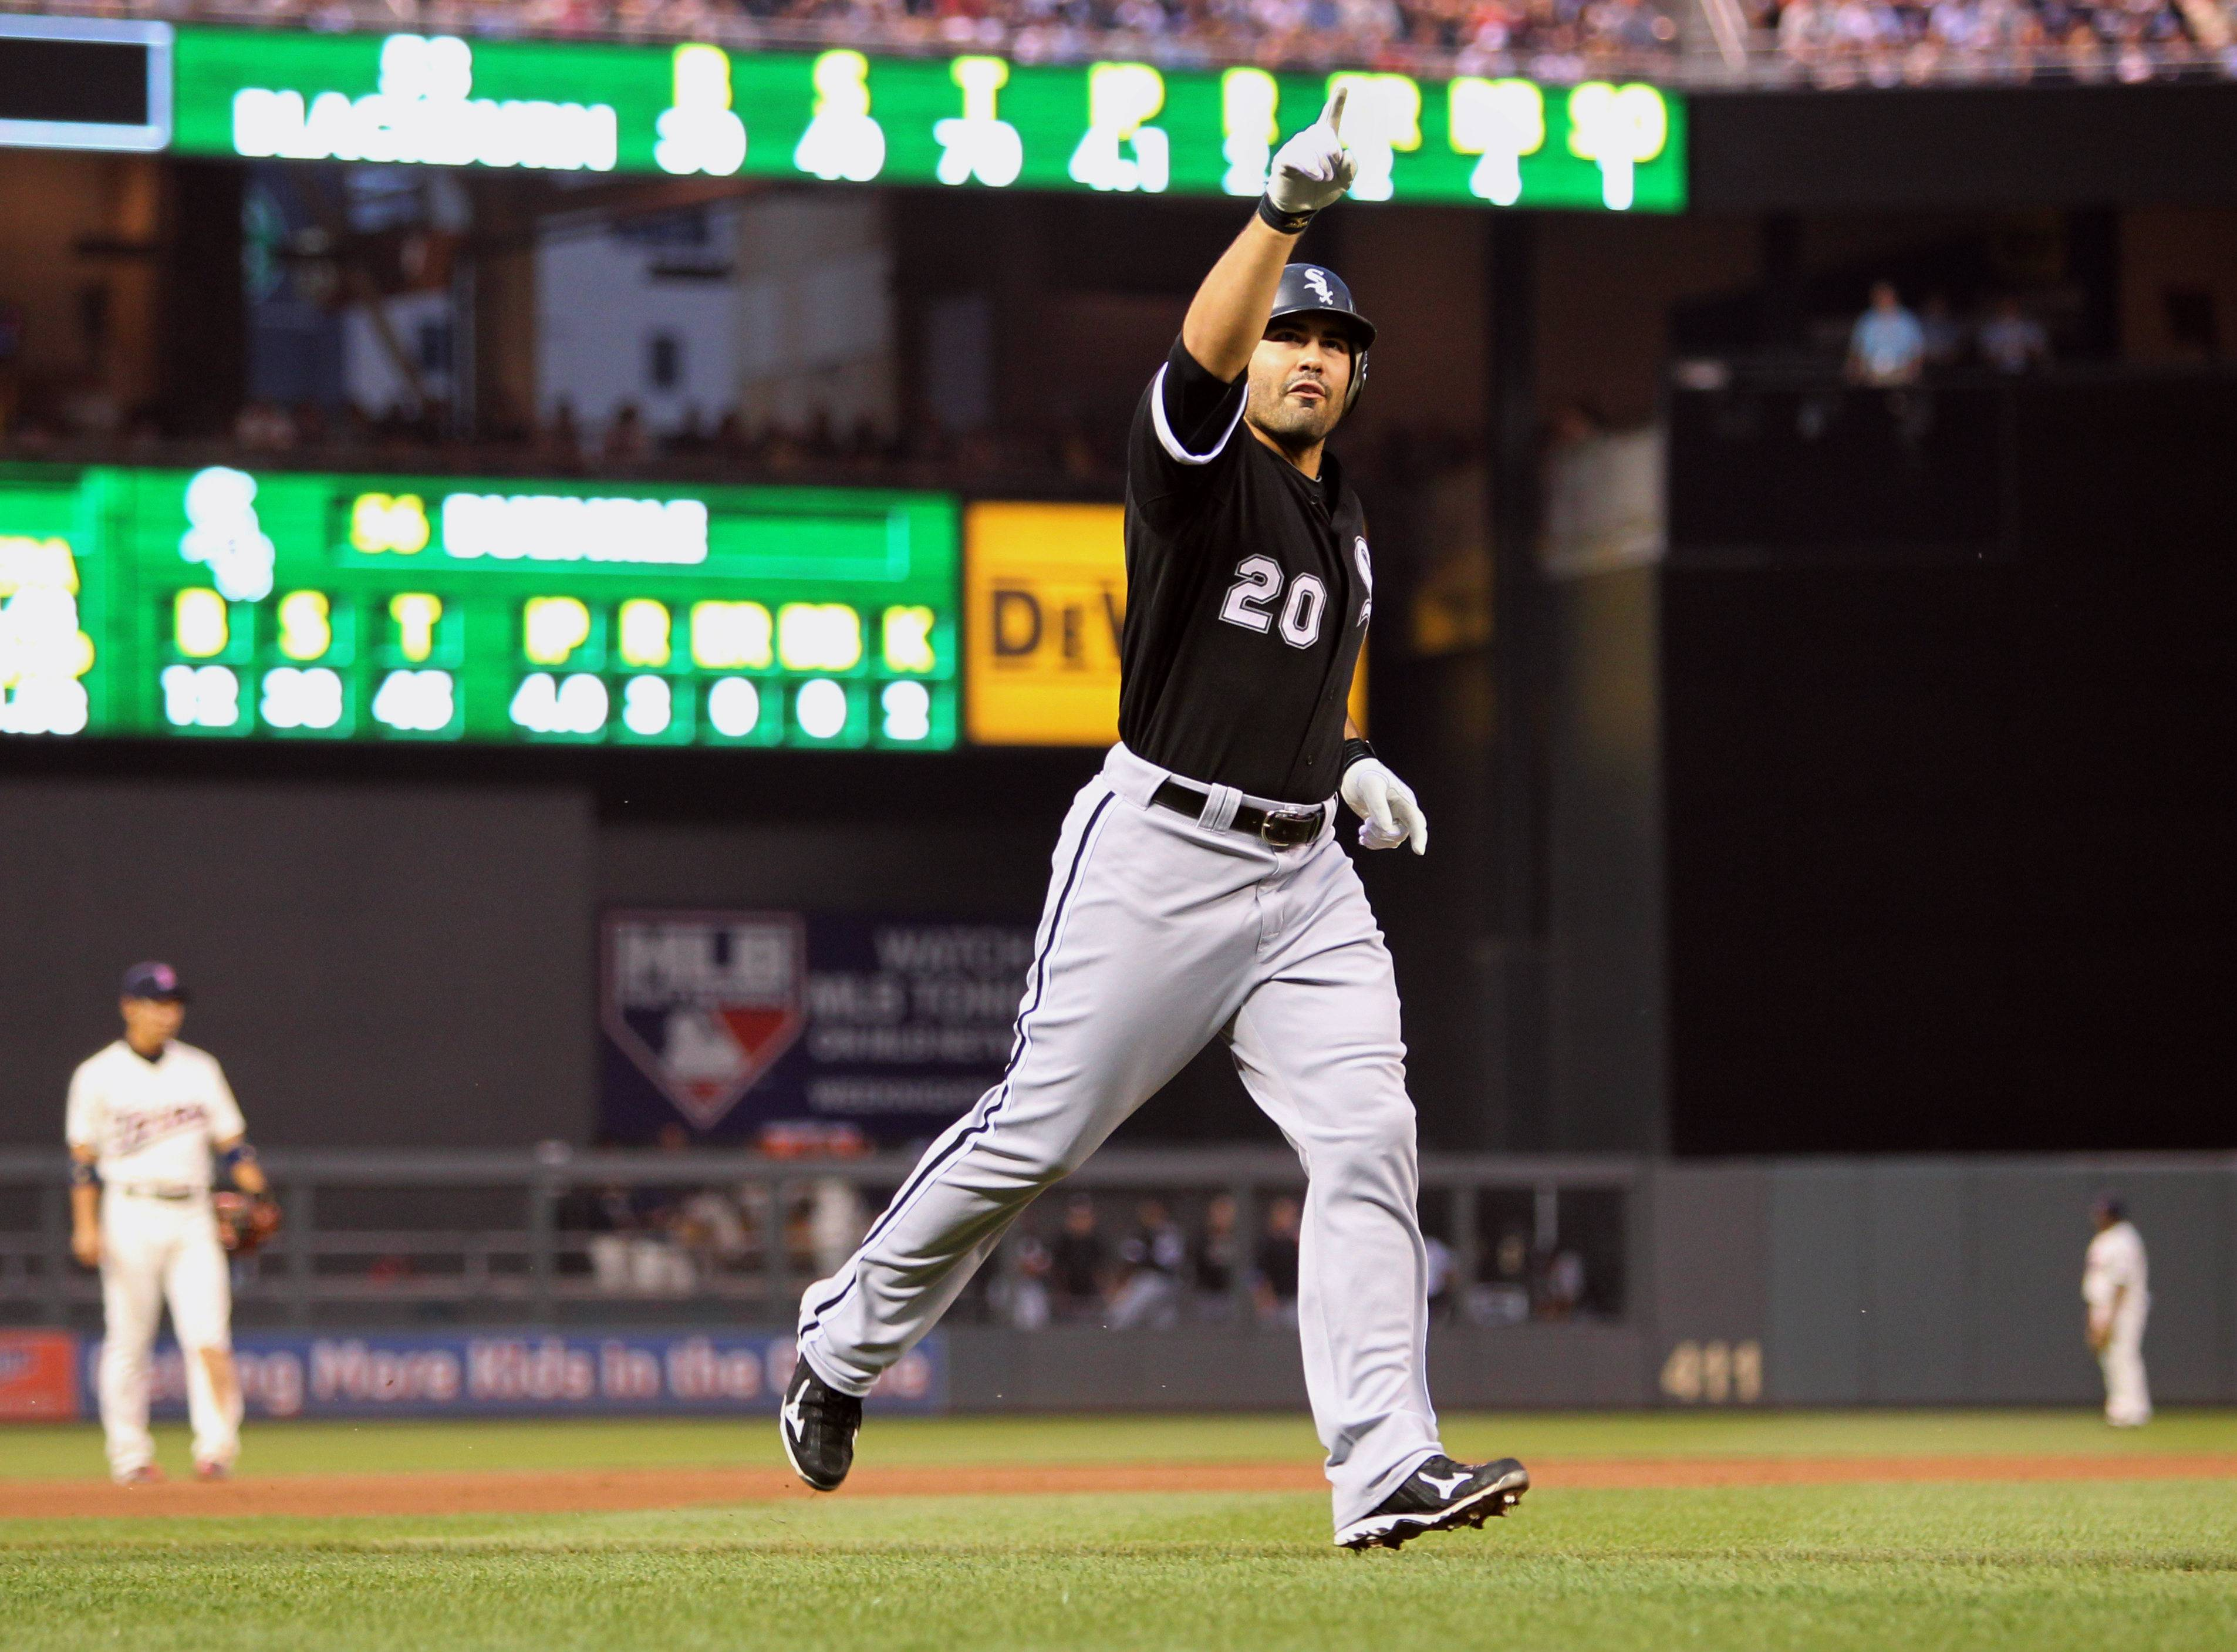 Carlos Quentin hit two home runs and had four RBIs in the White Sox' 5-3 win Friday night.